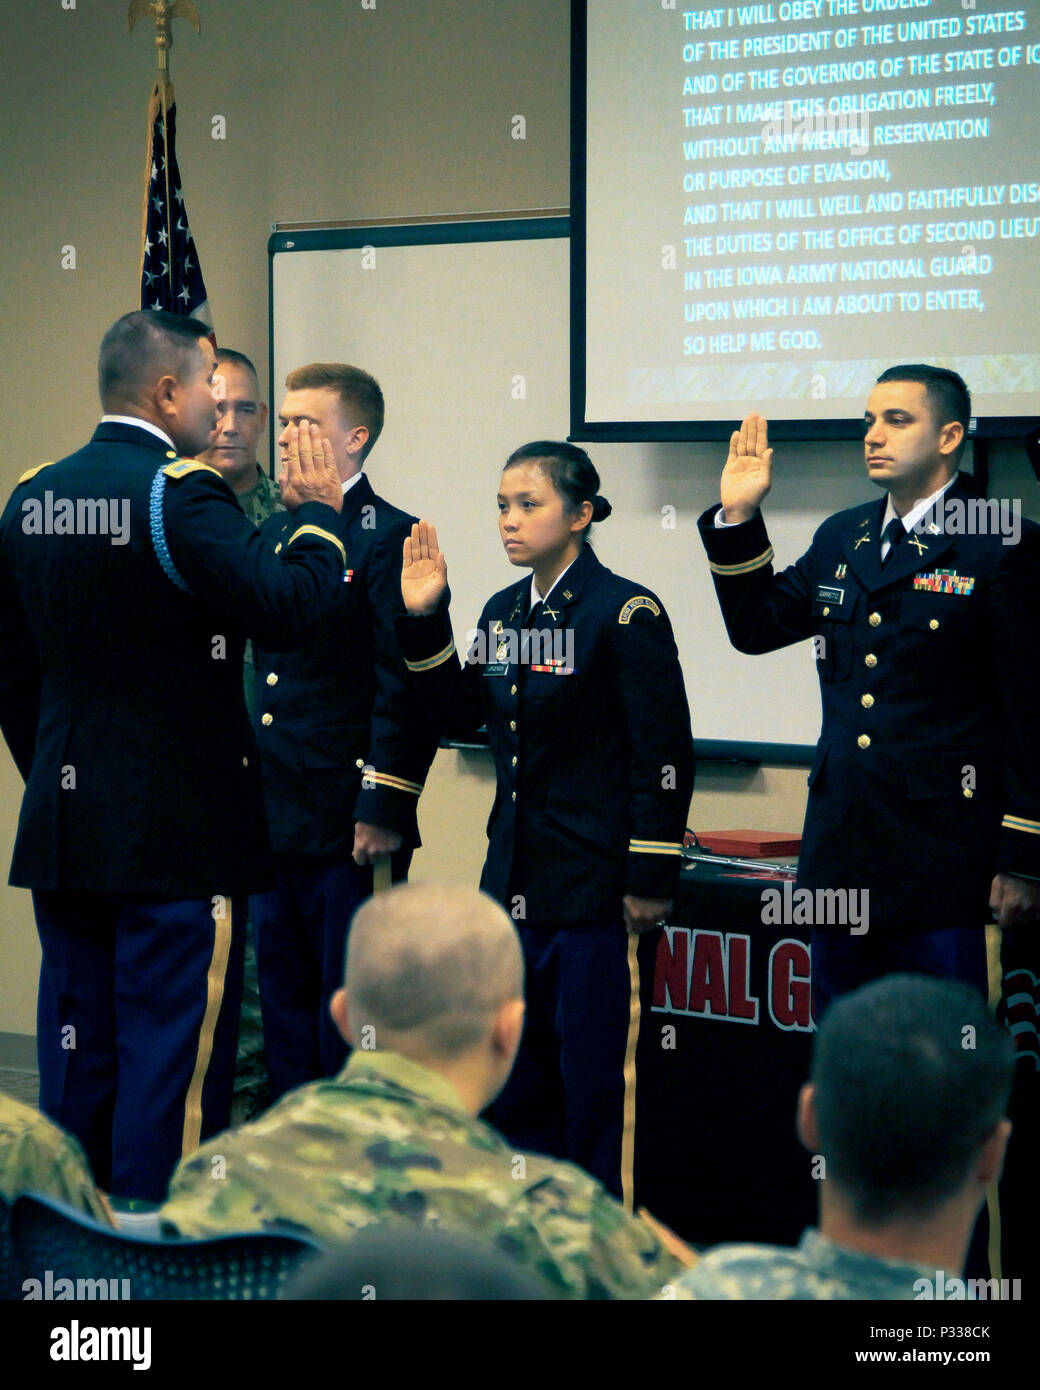 Iowa Army National Guard 2nd Lt. Trang Jorgensen (center), Headquarters and Headquarters Company, 1st Battalion, 168th Infantry, is administered the Oath of Office by Col. Steve Kremer, 185th Regional Training Institute commandant, alongside her peers at their commissioning  ceremony on Camp Dodge Joint Maneuver Training Center in Johnston, Iowa, on Aug. 20. Jorgensen is the first female officer in the Iowa National Guard to select infantry as her branch. (U.S. Army National Guard photo by Sgt. Christie Smith) - Stock Image